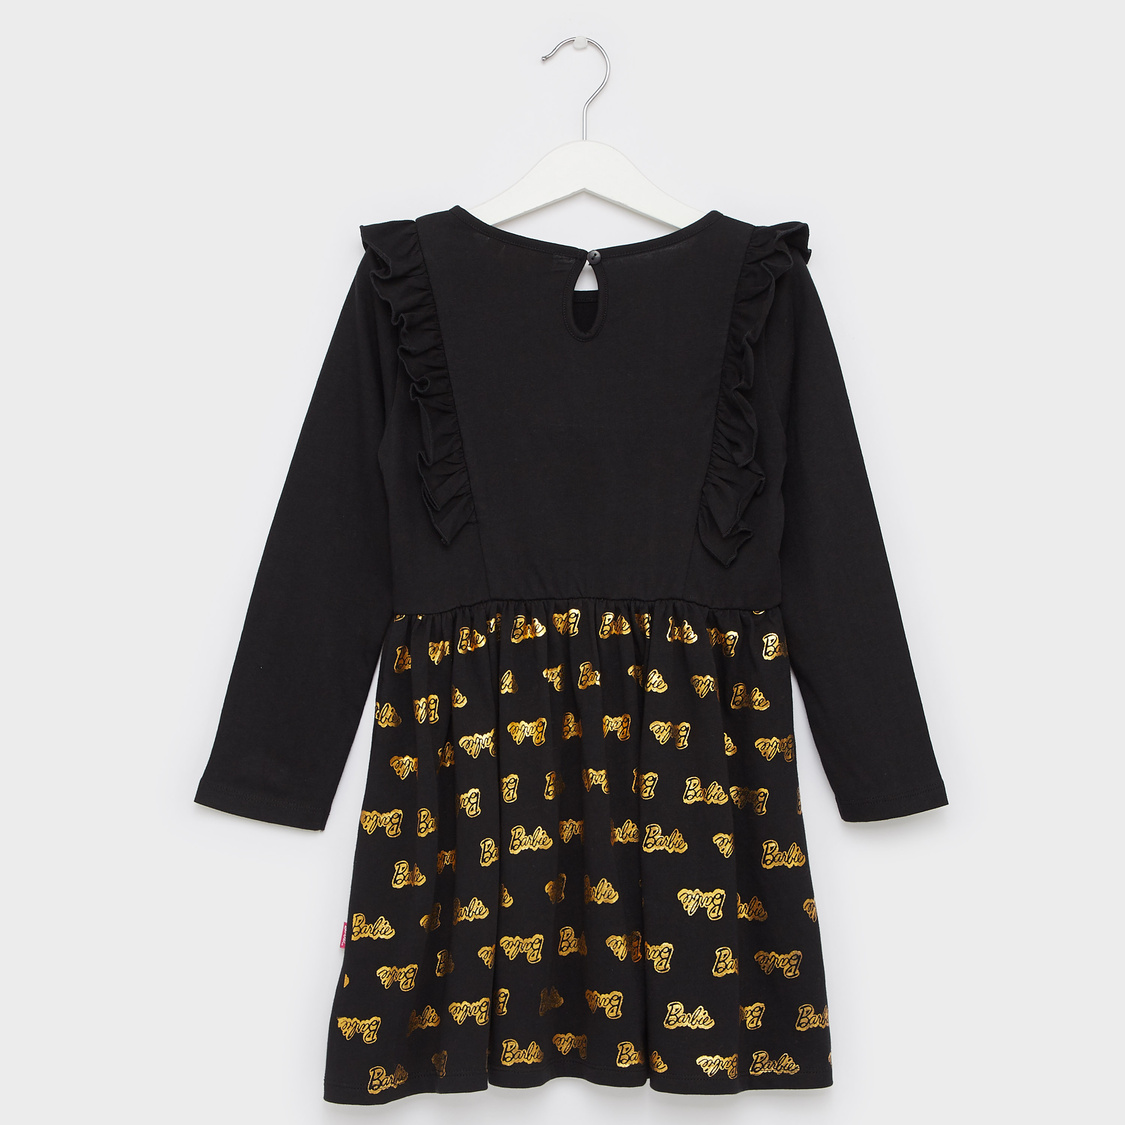 Typographic Print Round Neck Dress with Long Sleeves and Ruffle Detail